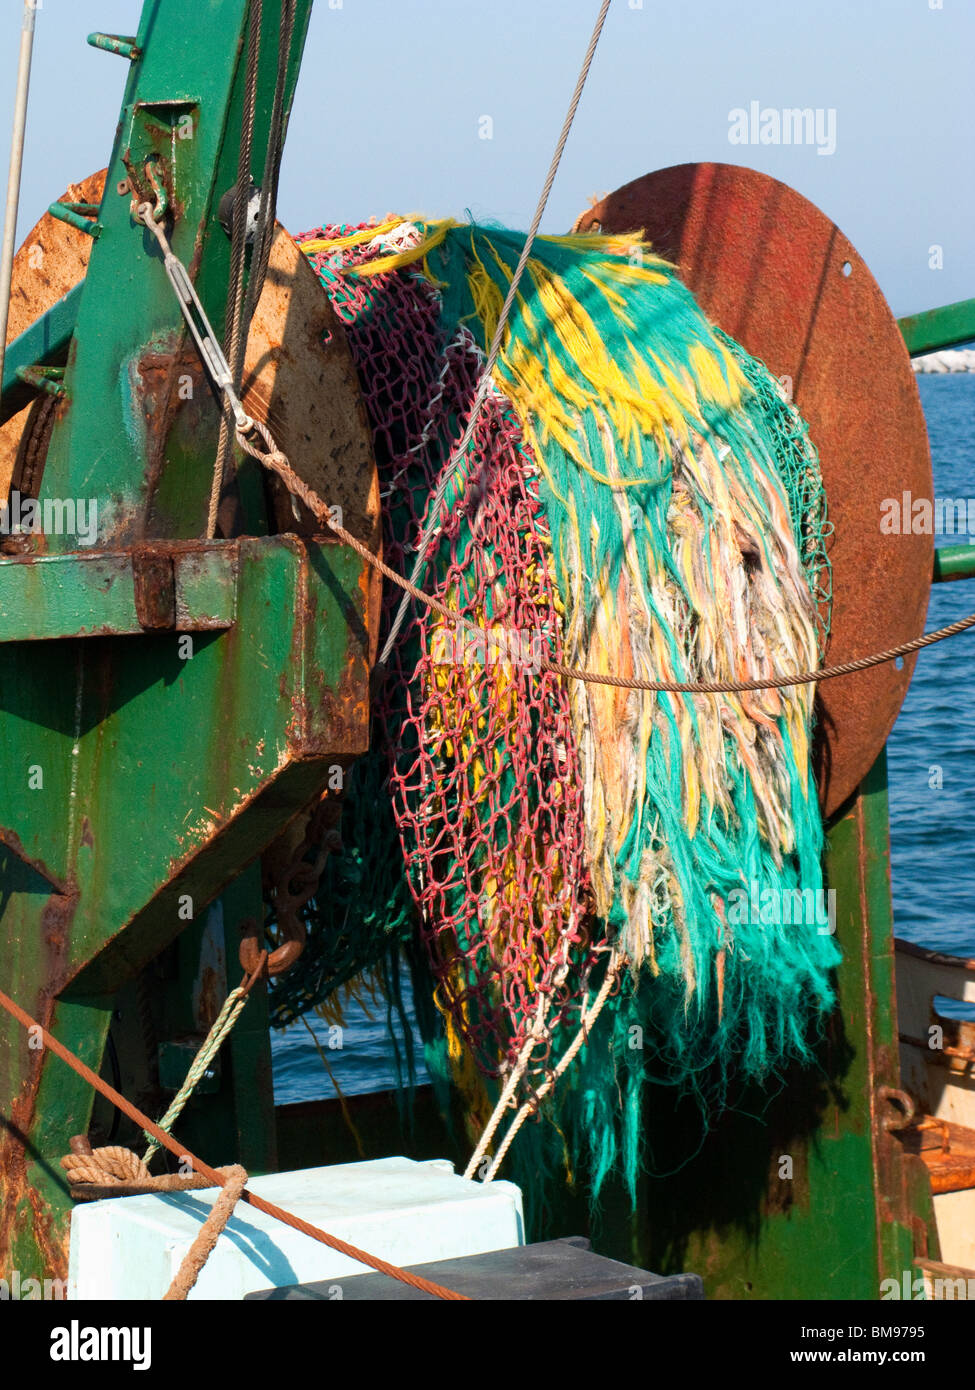 Colorful Net on Back of Fishing Boat Wound Up on Core - Stock Image